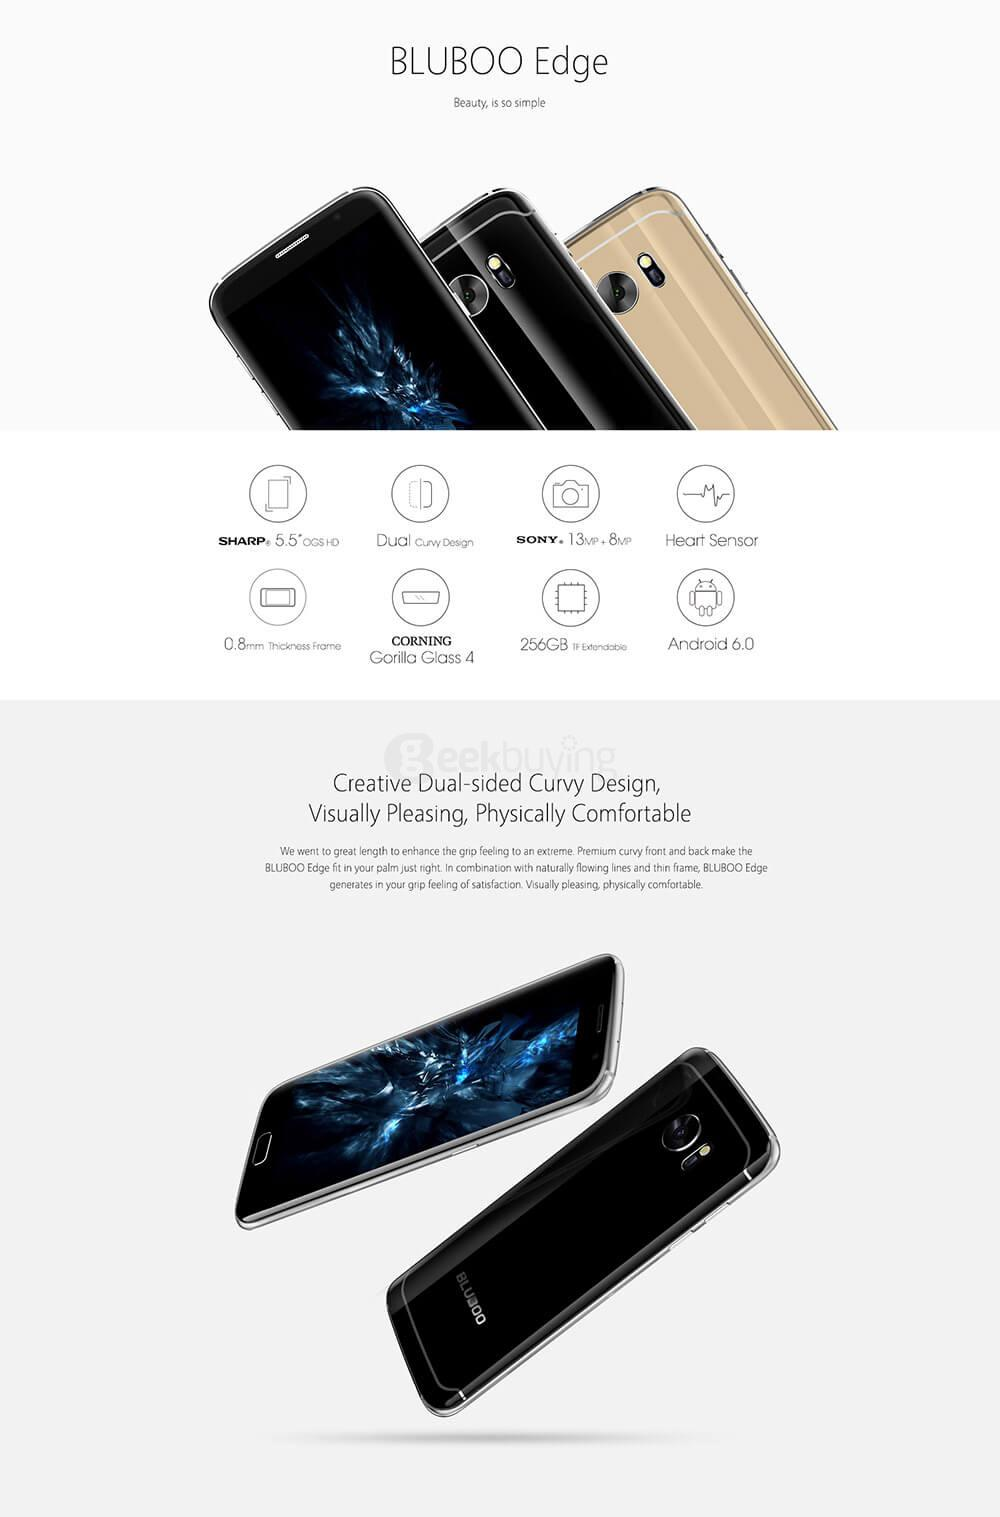 BLUBOO Edge 5 5inch HD Android 6 0 4G LTE Smartphone MT6737 Quad Core  1 3GHz 2GB RAM 16GB ROM 13 0MP Touch ID Heart Sensor - Black